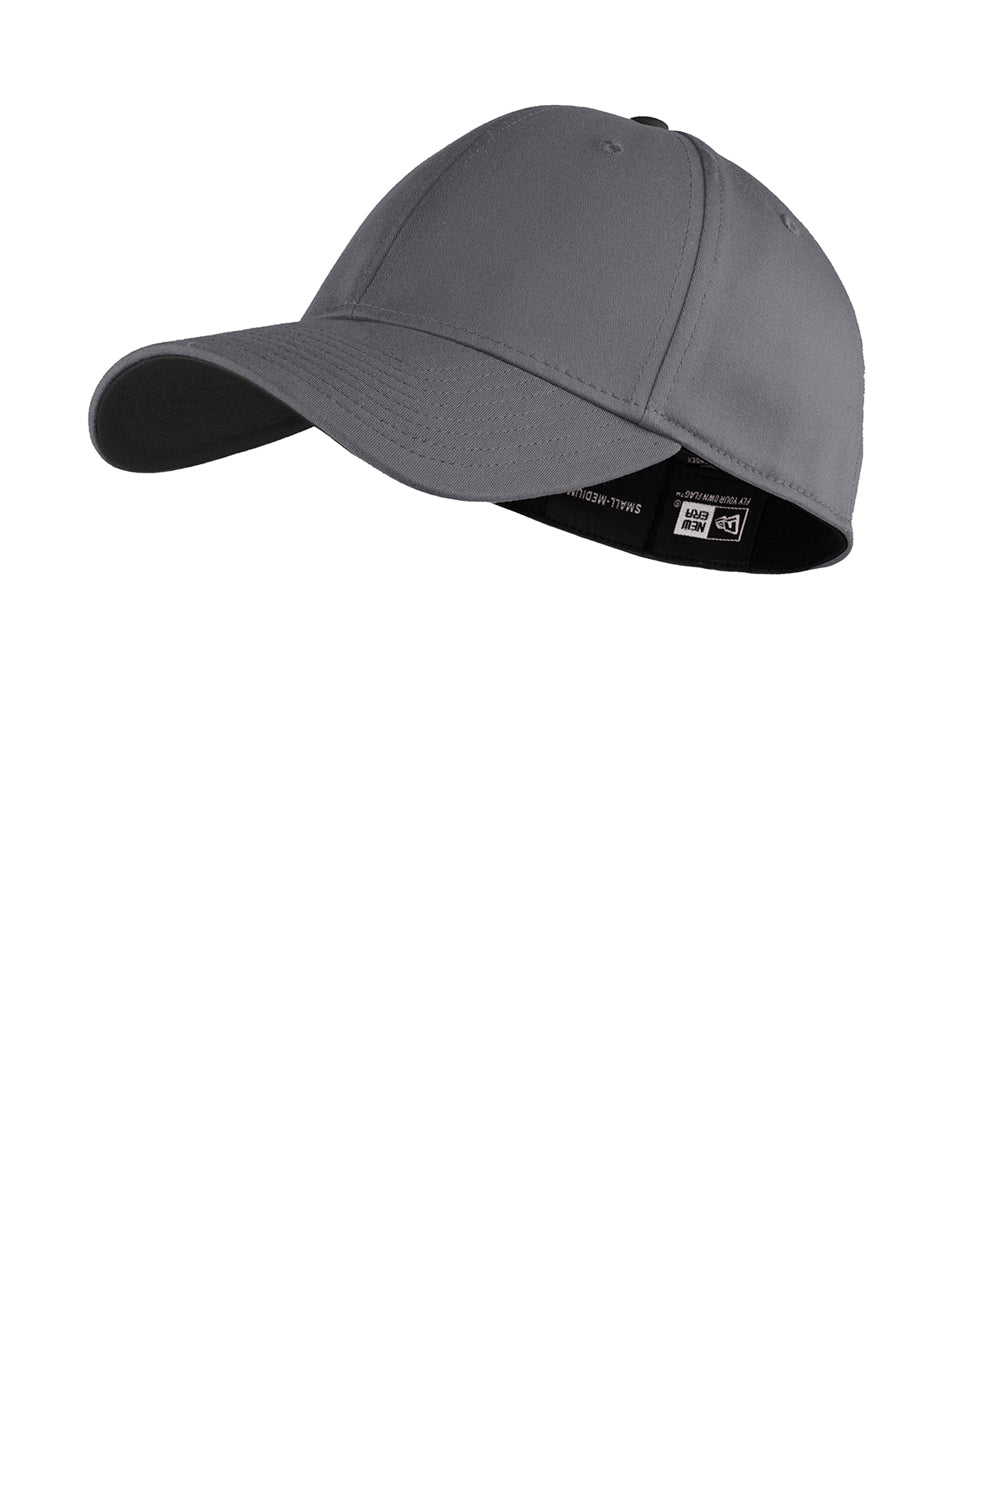 New Era NE1100 Mens Stretch Fit Hat Graphite Grey/Black Front